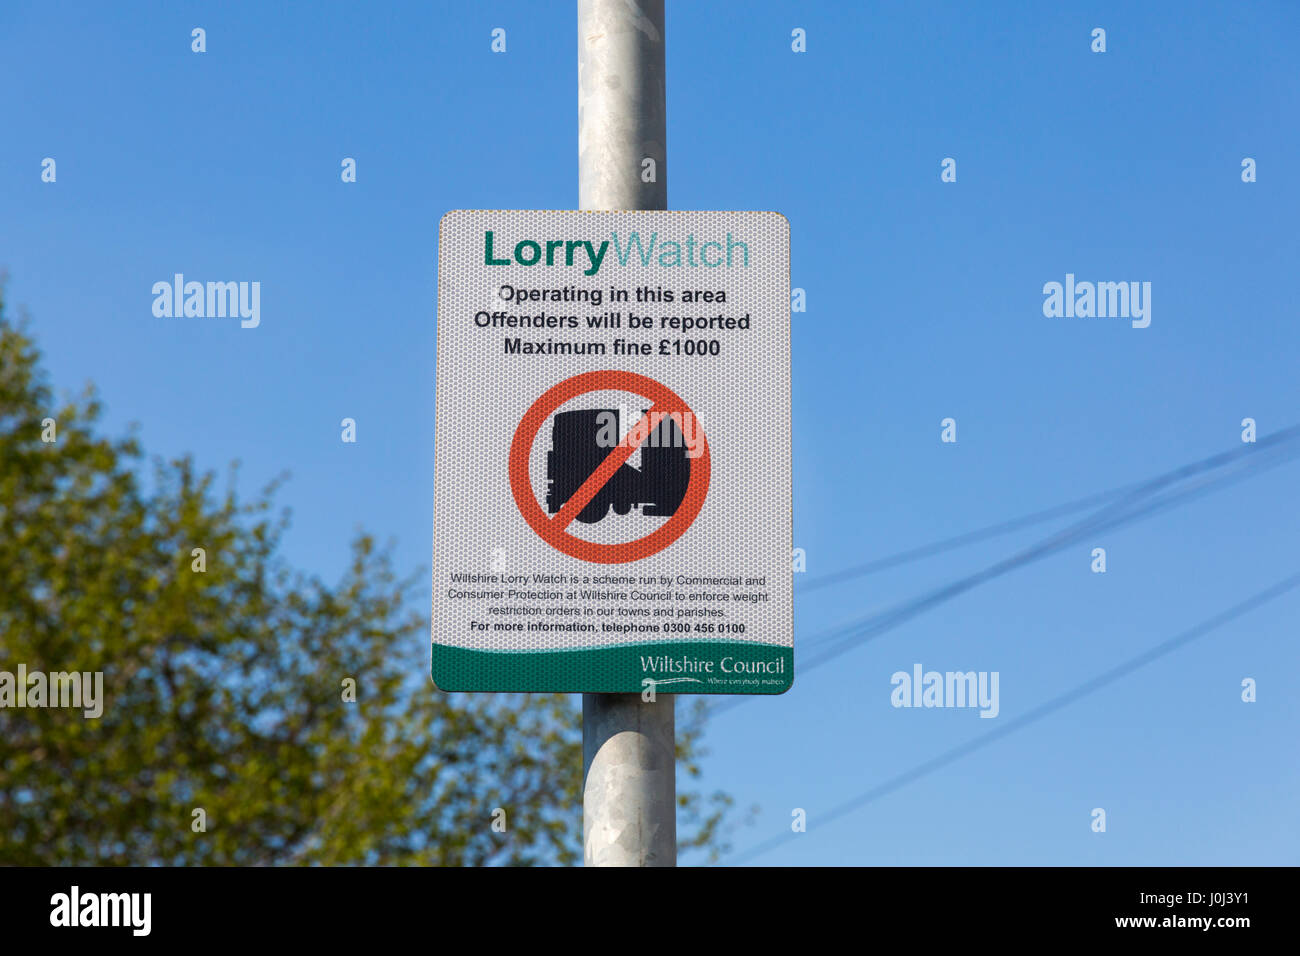 no lorries LorryWatch Lorry Watch operating in this area offenders will be reported maximum fine £1000 road - Stock Image